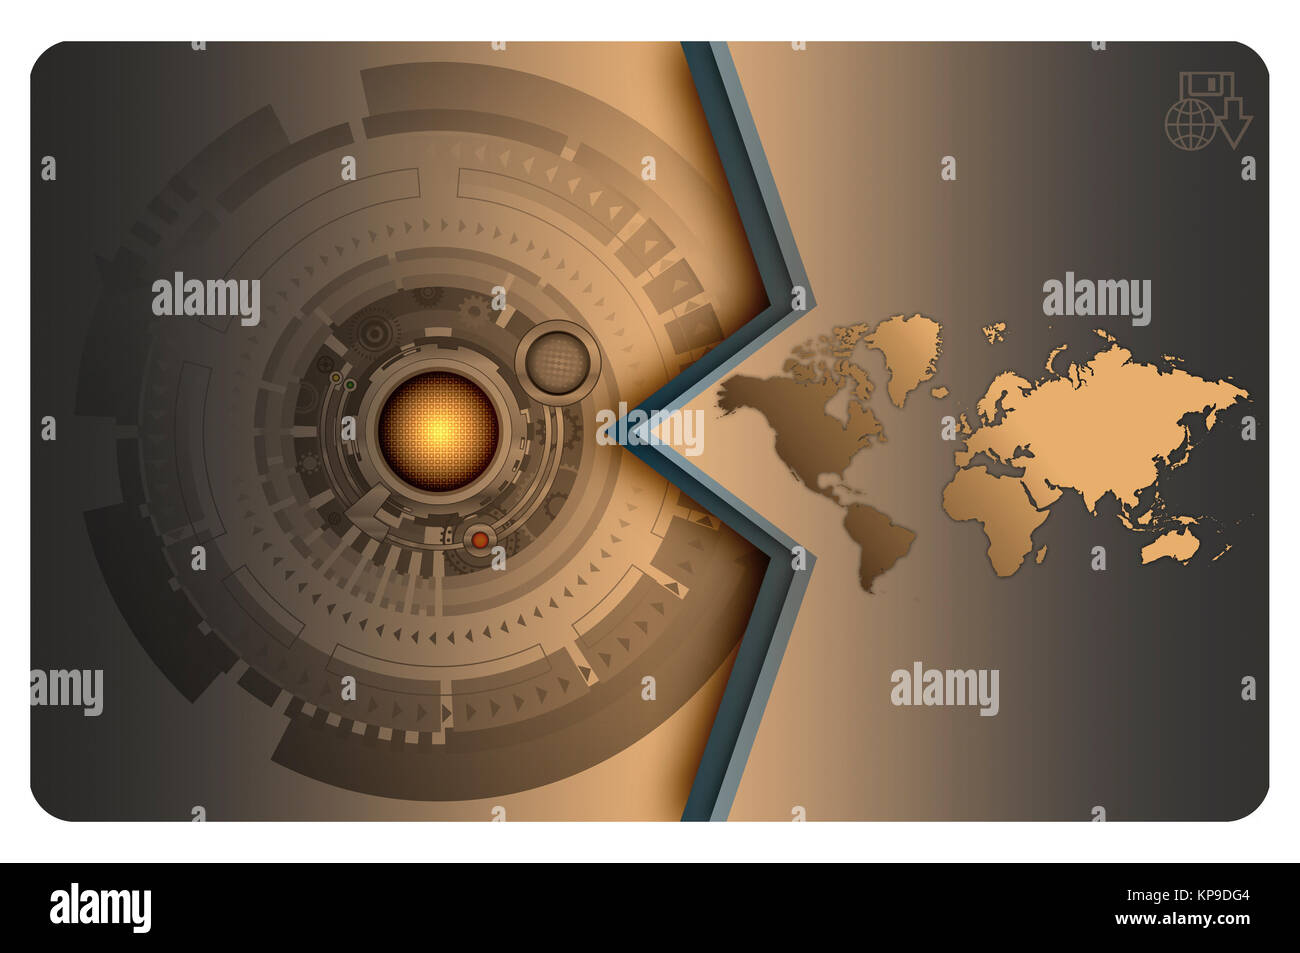 Futuristic background with abstract technology elements and world futuristic background with abstract technology elements and world map for the design of business card colourmoves